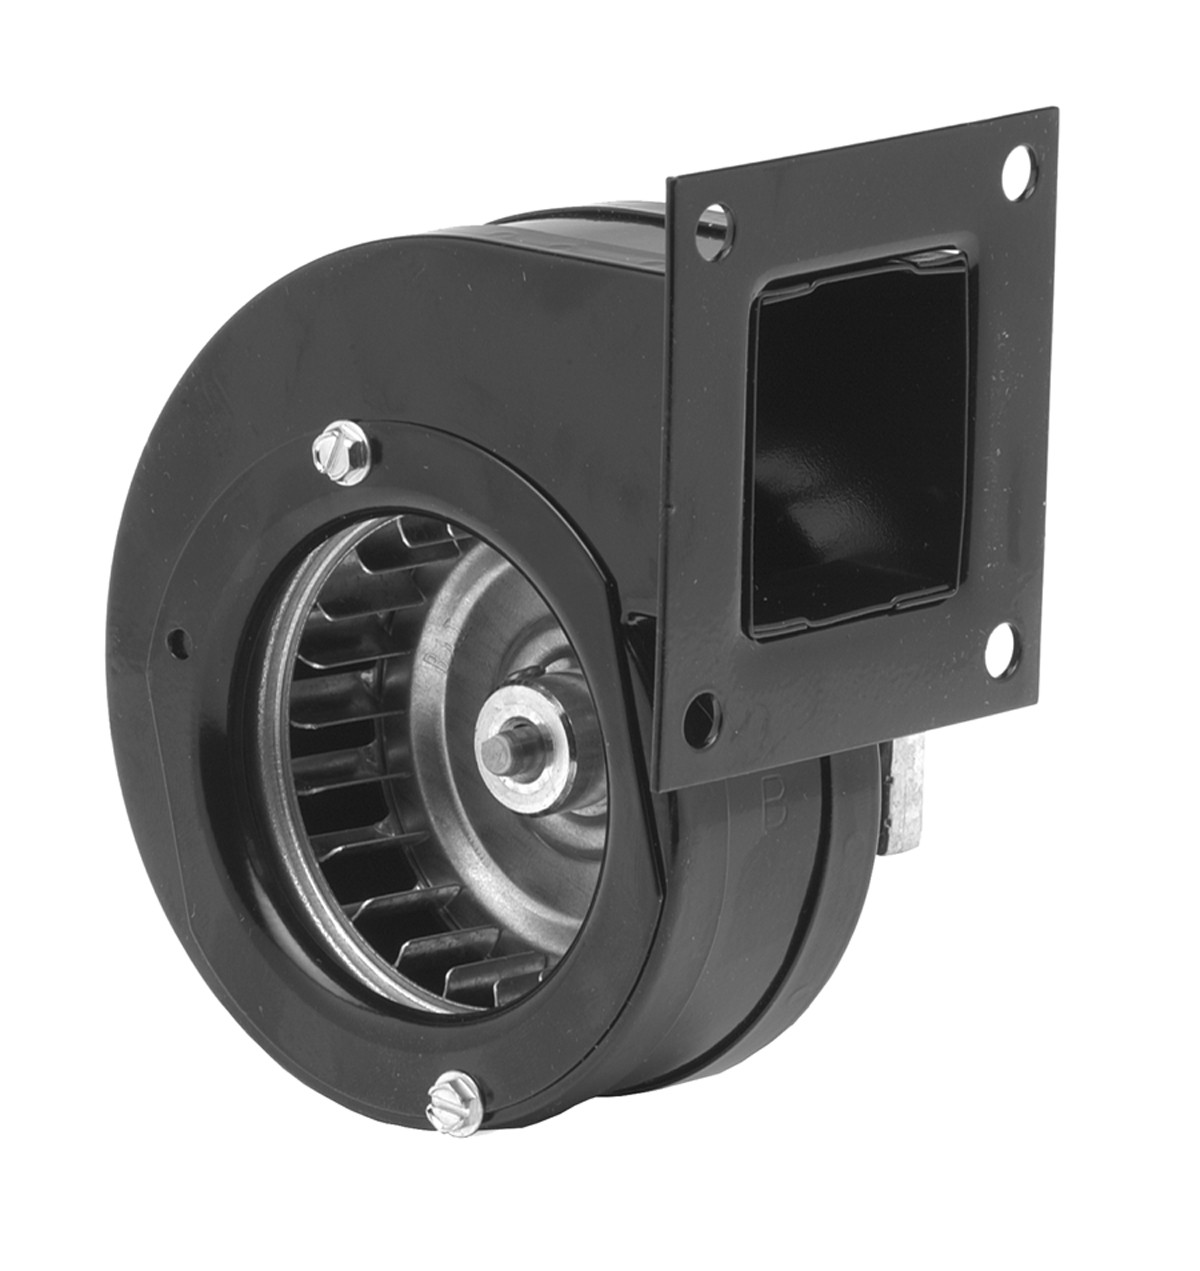 Fasco  7002 3388  Centrifugal Blower 115 Volts   A167. Fasco Electric Squirrel Cage Blowers for woodstoves  Pellet Stoves